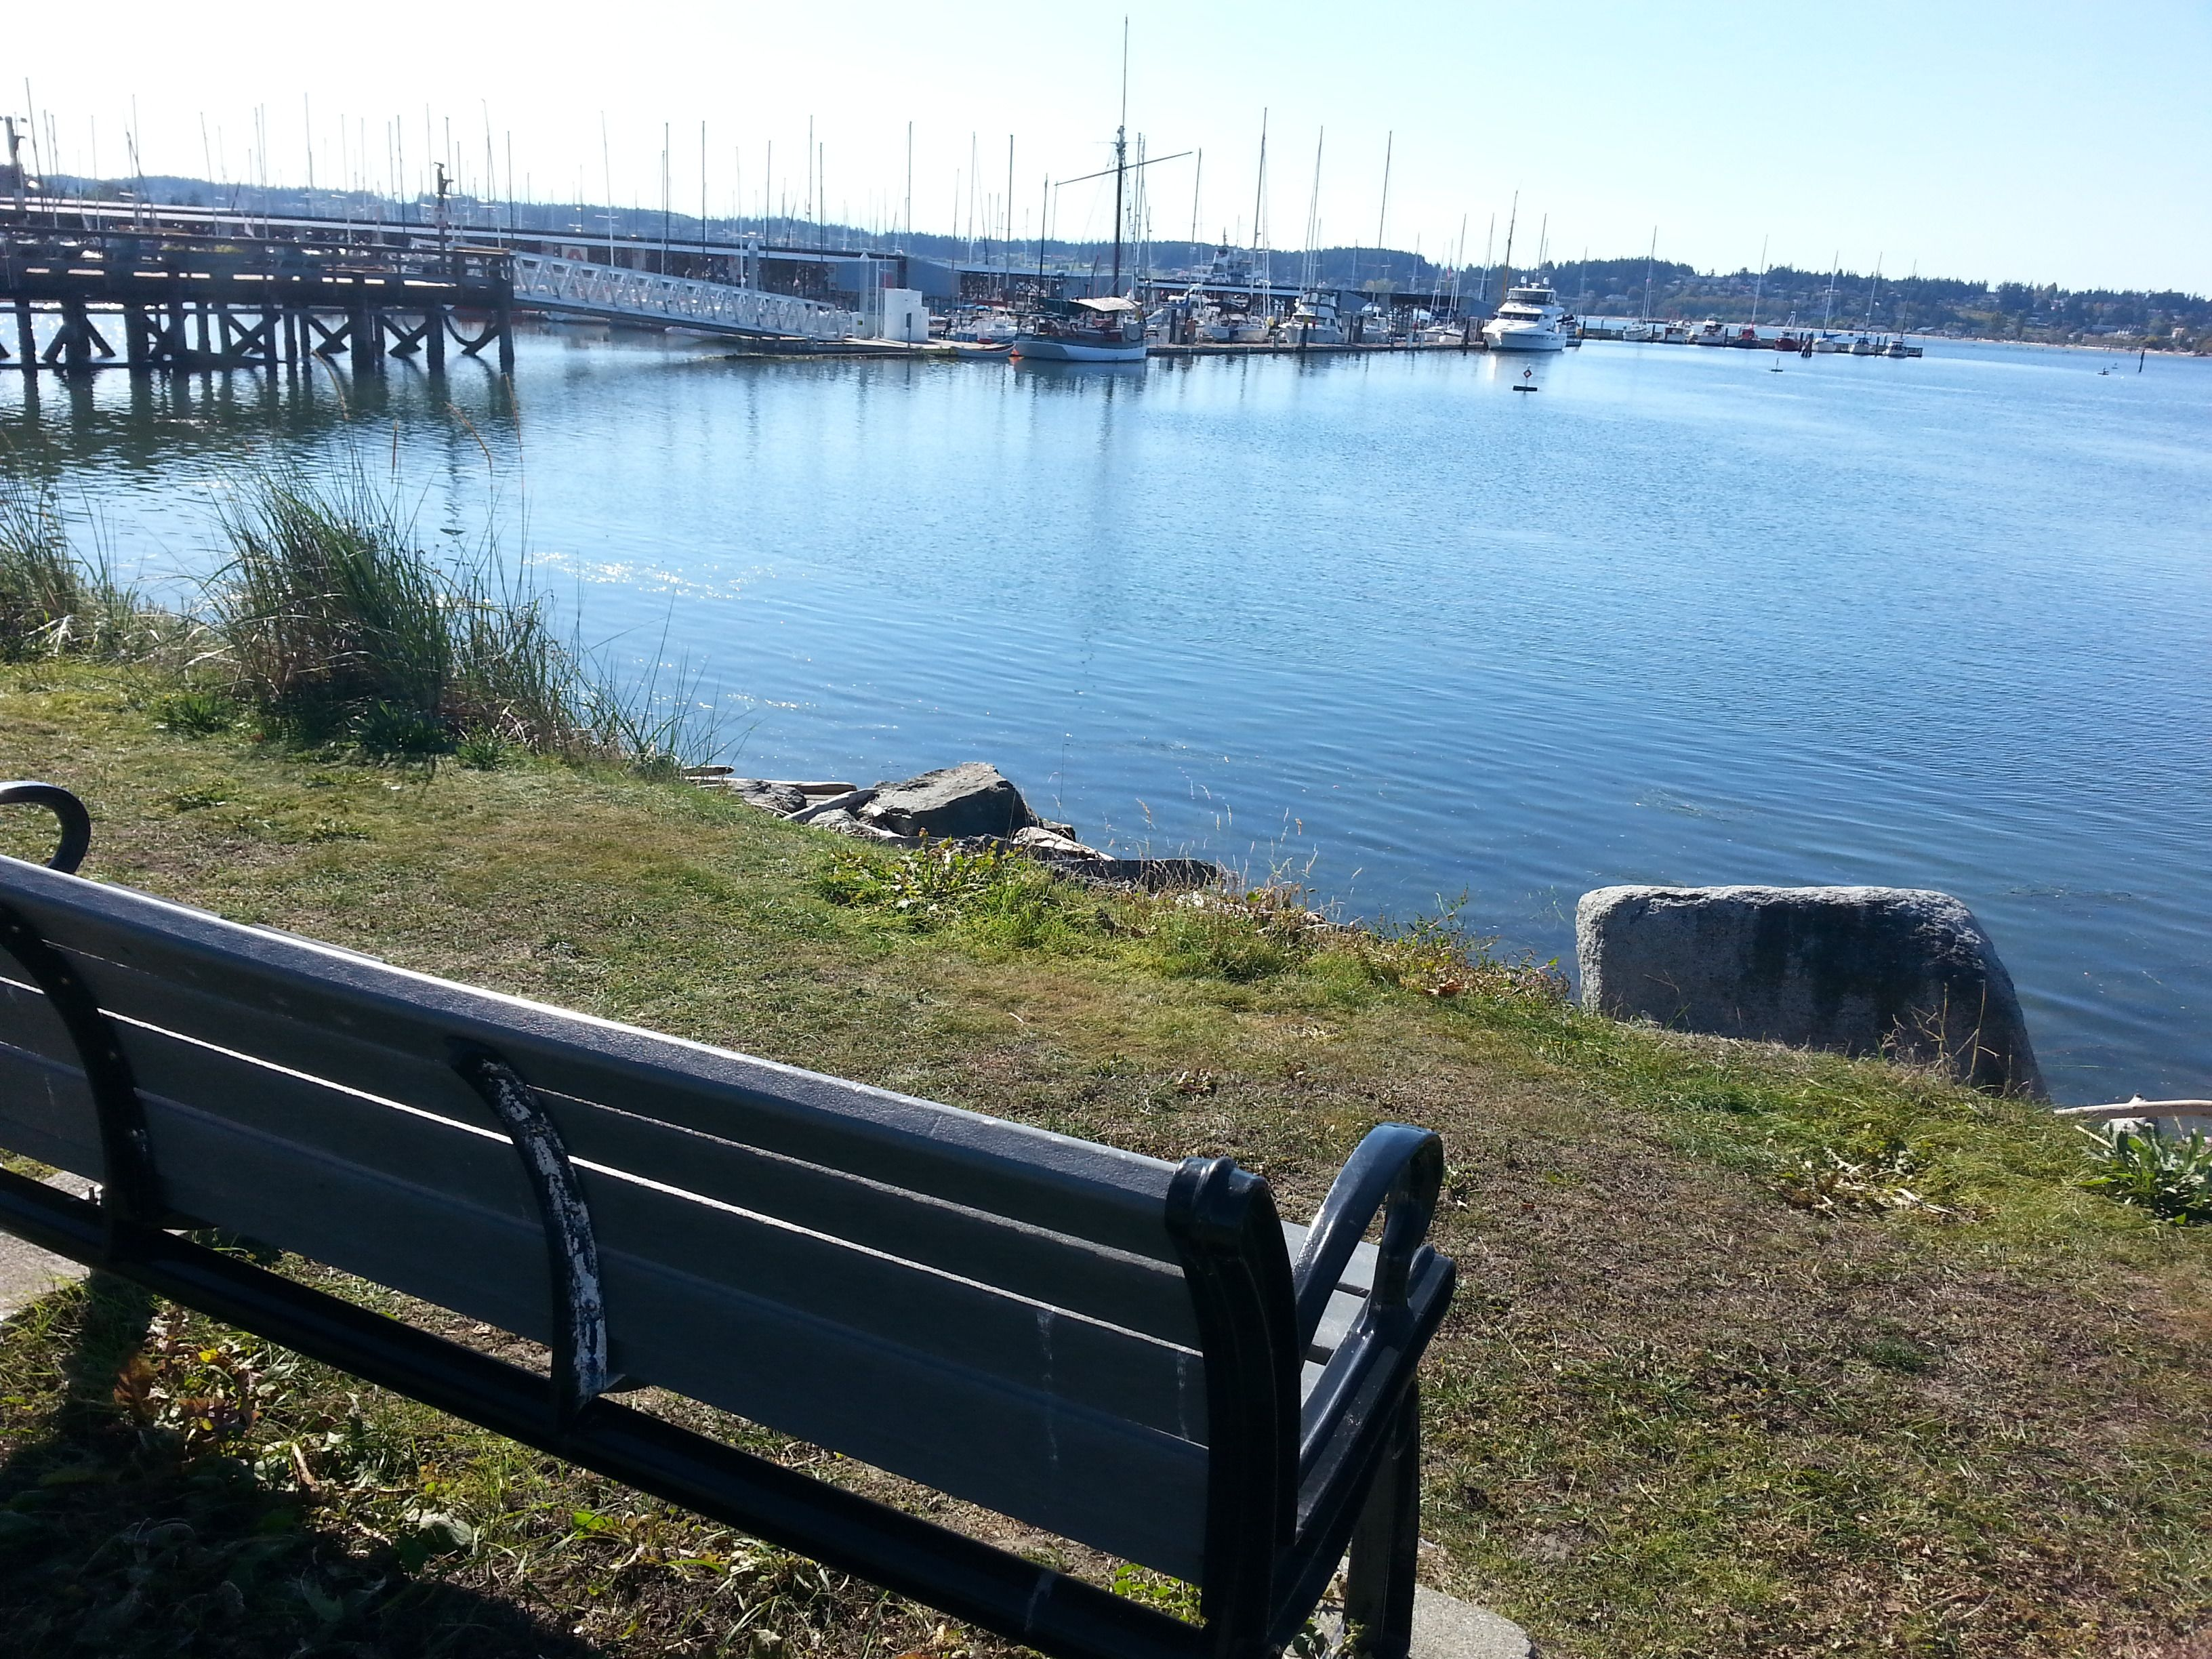 Benches offer the walker a place to rest at Oak Harbor Marina.